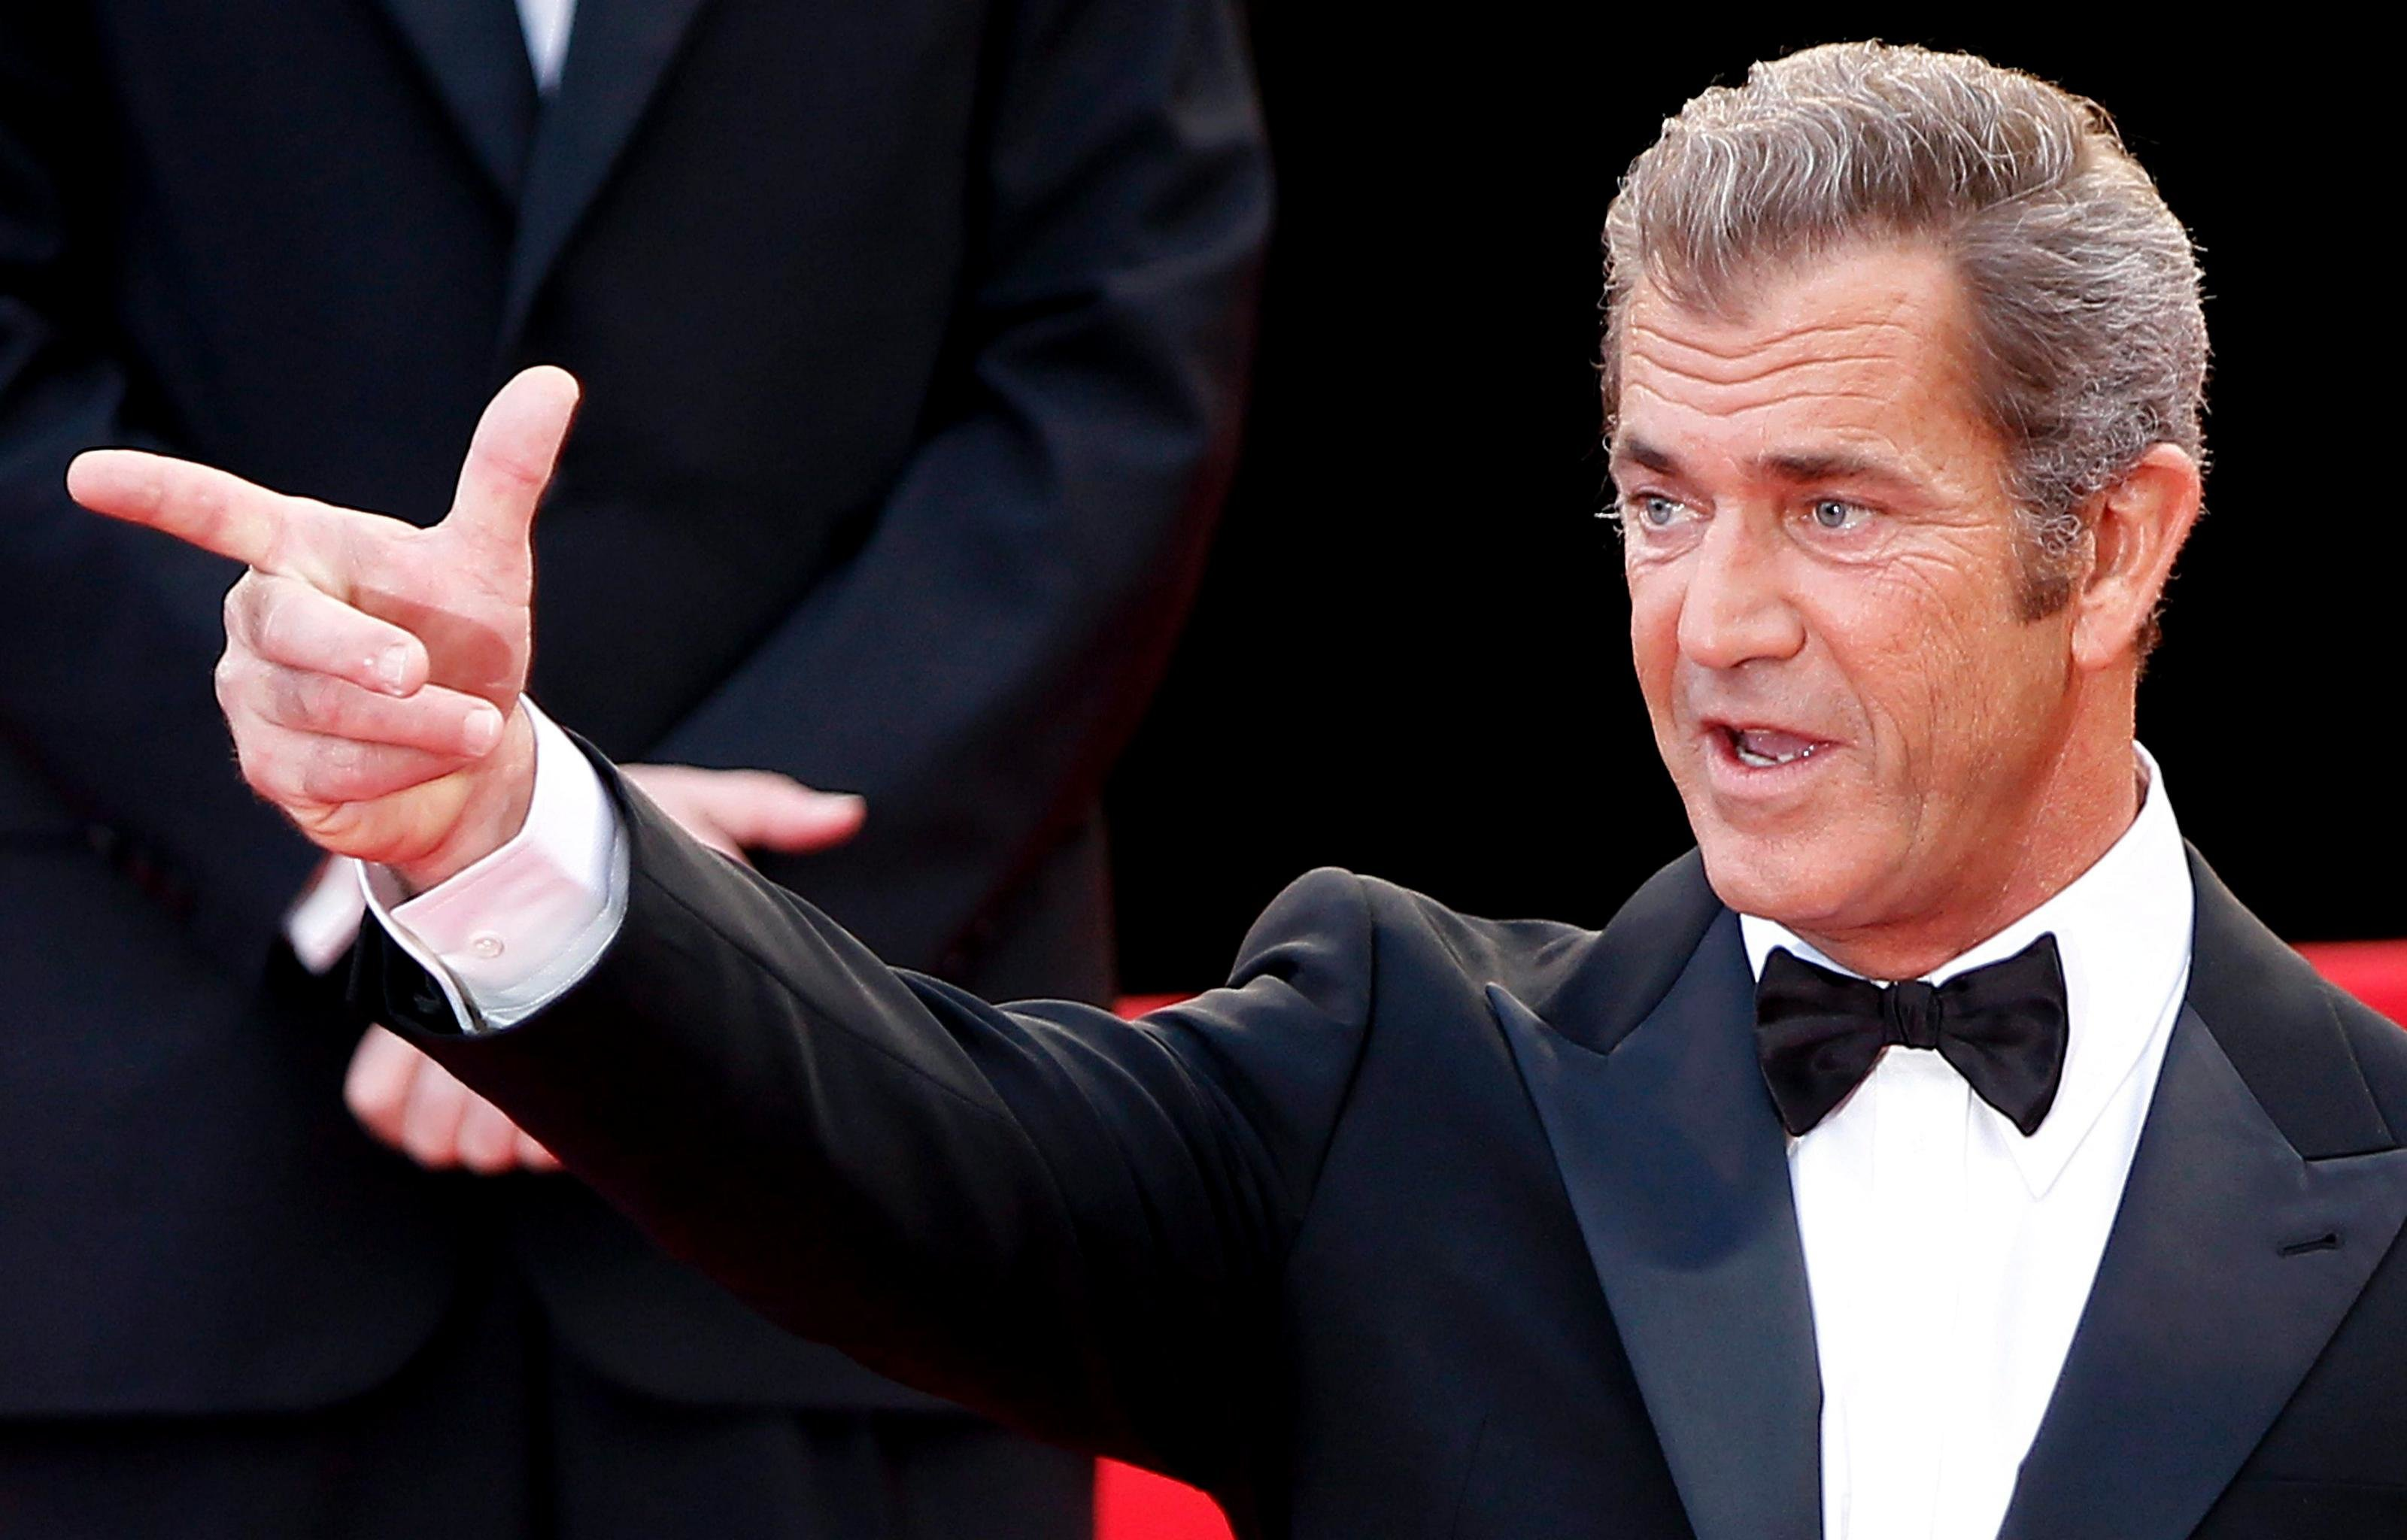 Free download Mel Gibson background ID:10071 hd 3200x2048 for computer